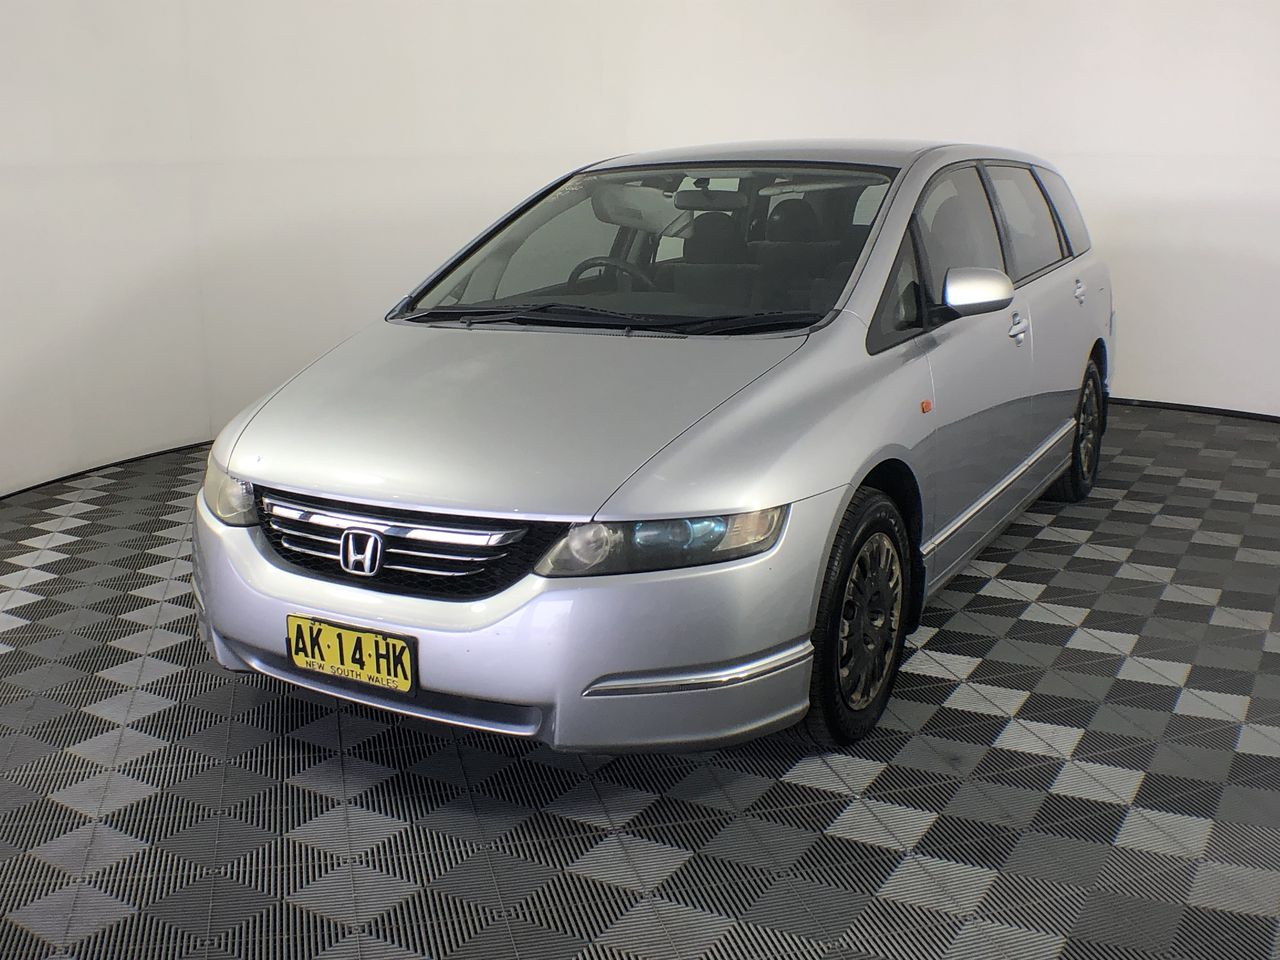 2006 Honda Odyssey Automatic 7 Seats People Mover